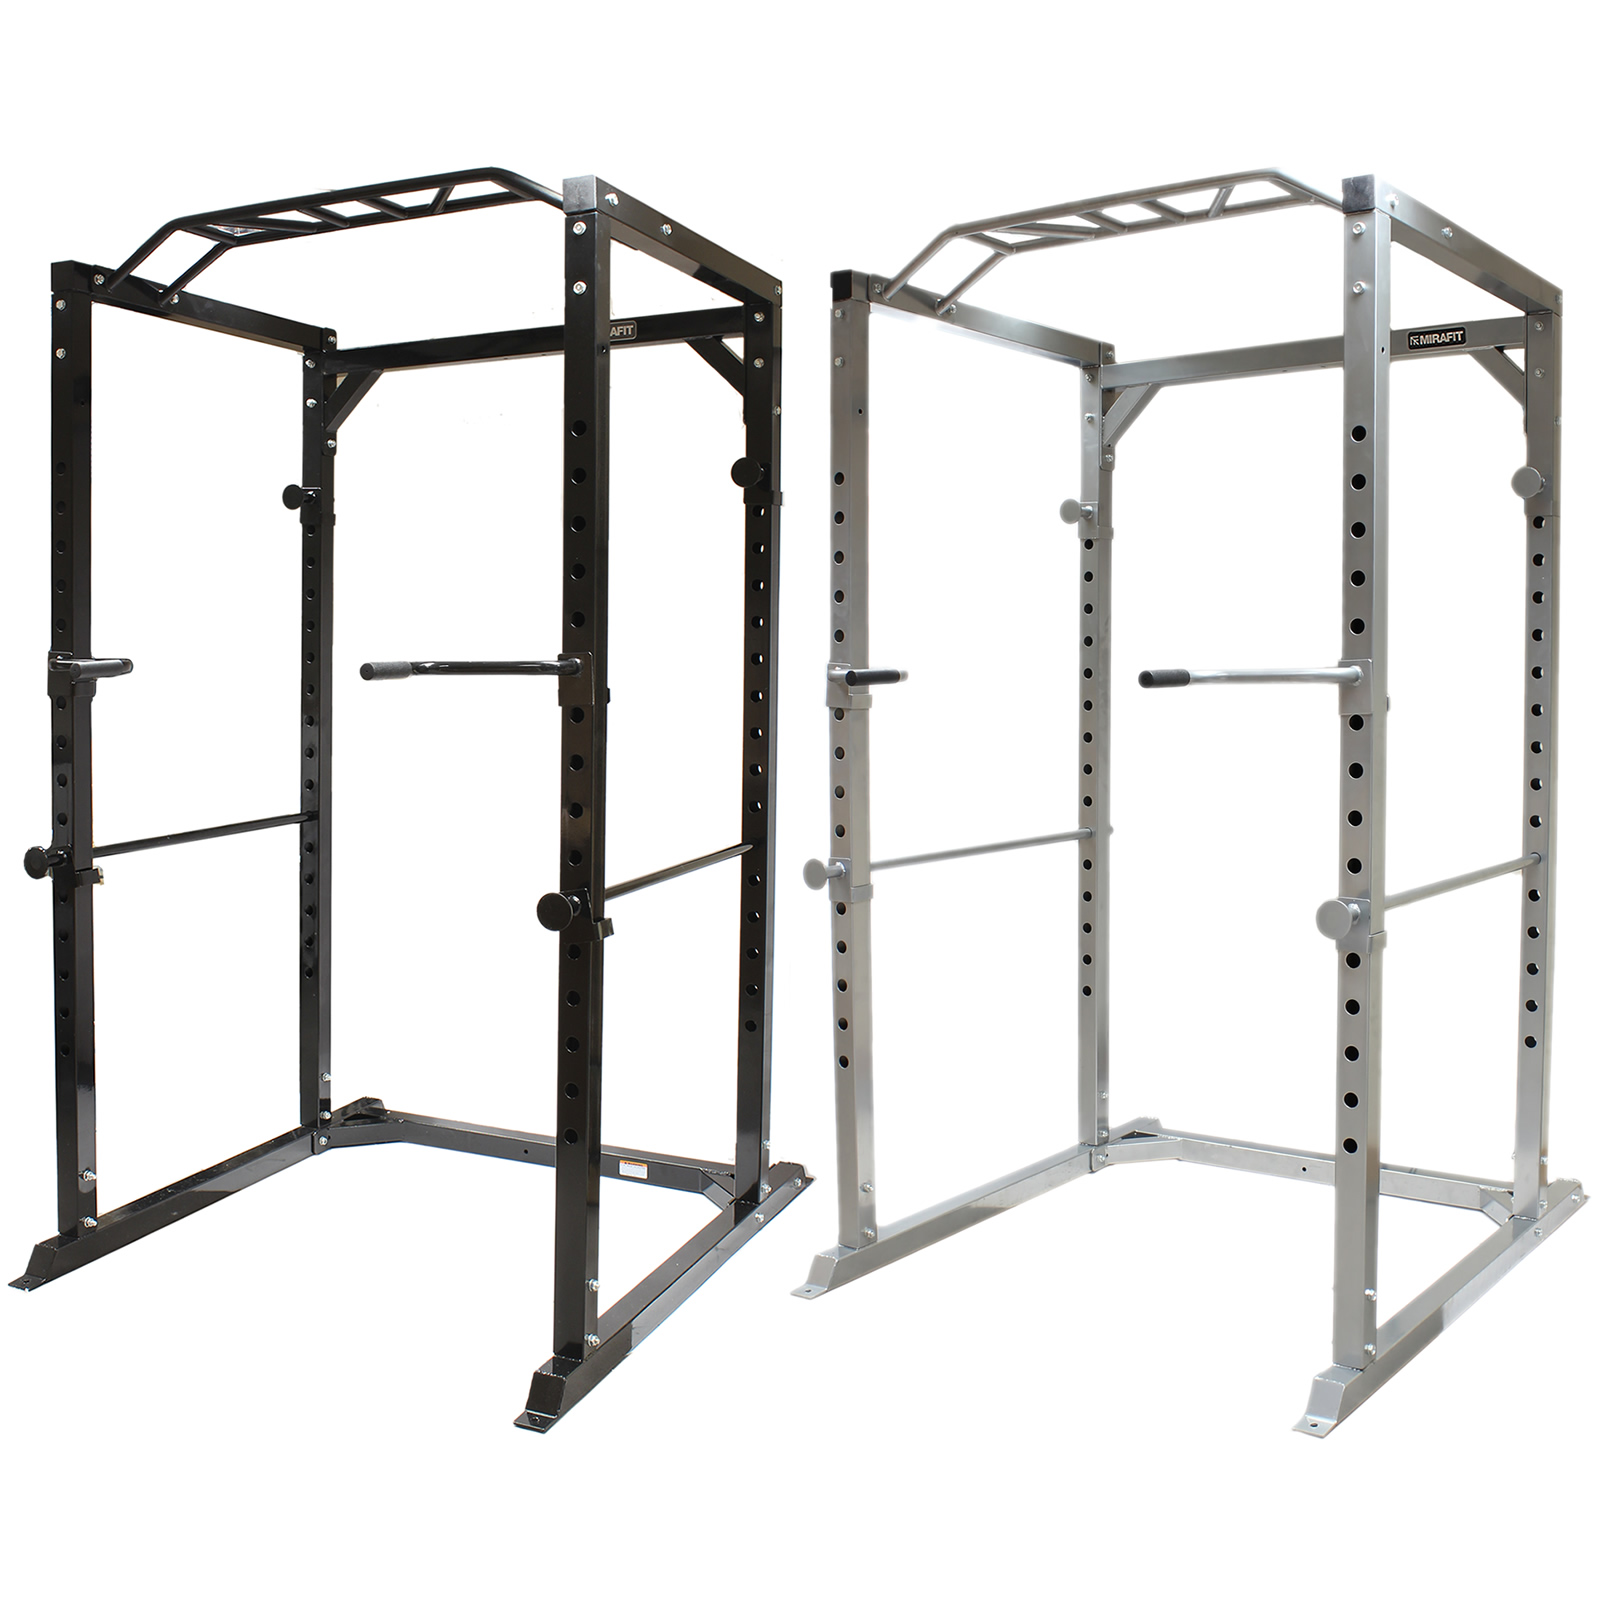 mirafit 350kg heavy duty olympic full power cage rack. Black Bedroom Furniture Sets. Home Design Ideas